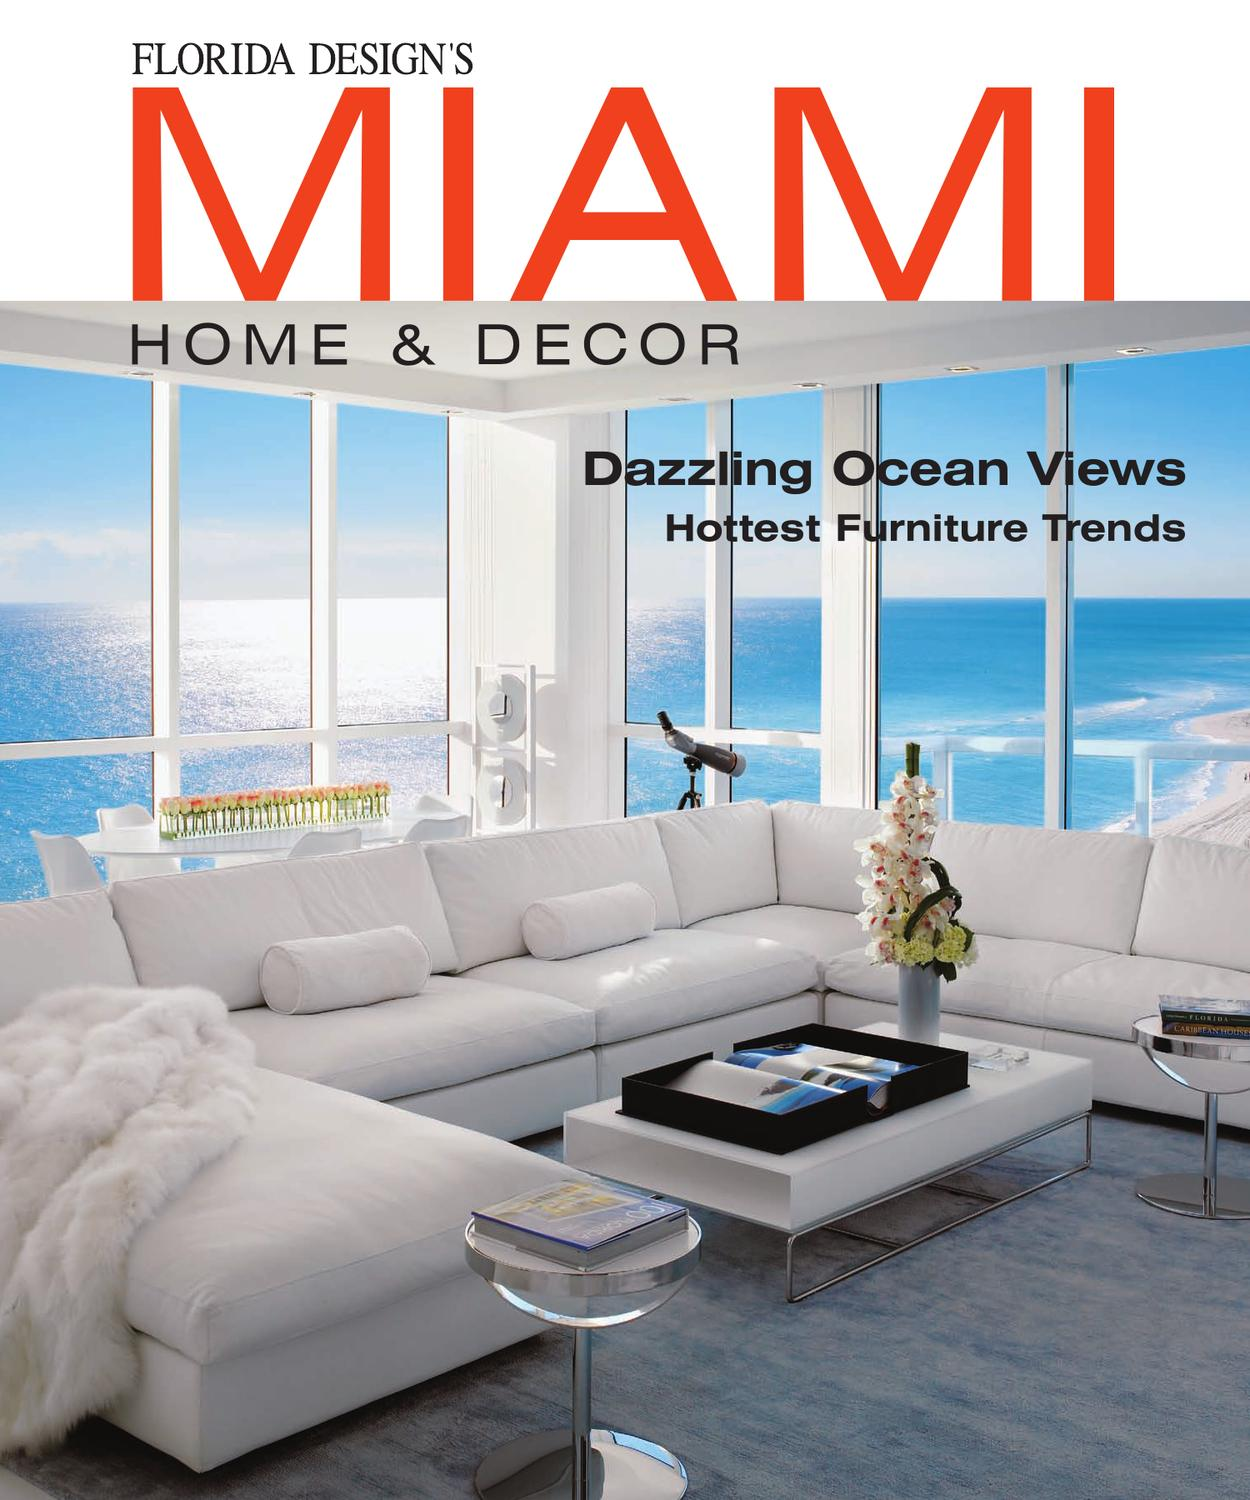 miami home decor magazine by florida design inc issuu. Black Bedroom Furniture Sets. Home Design Ideas